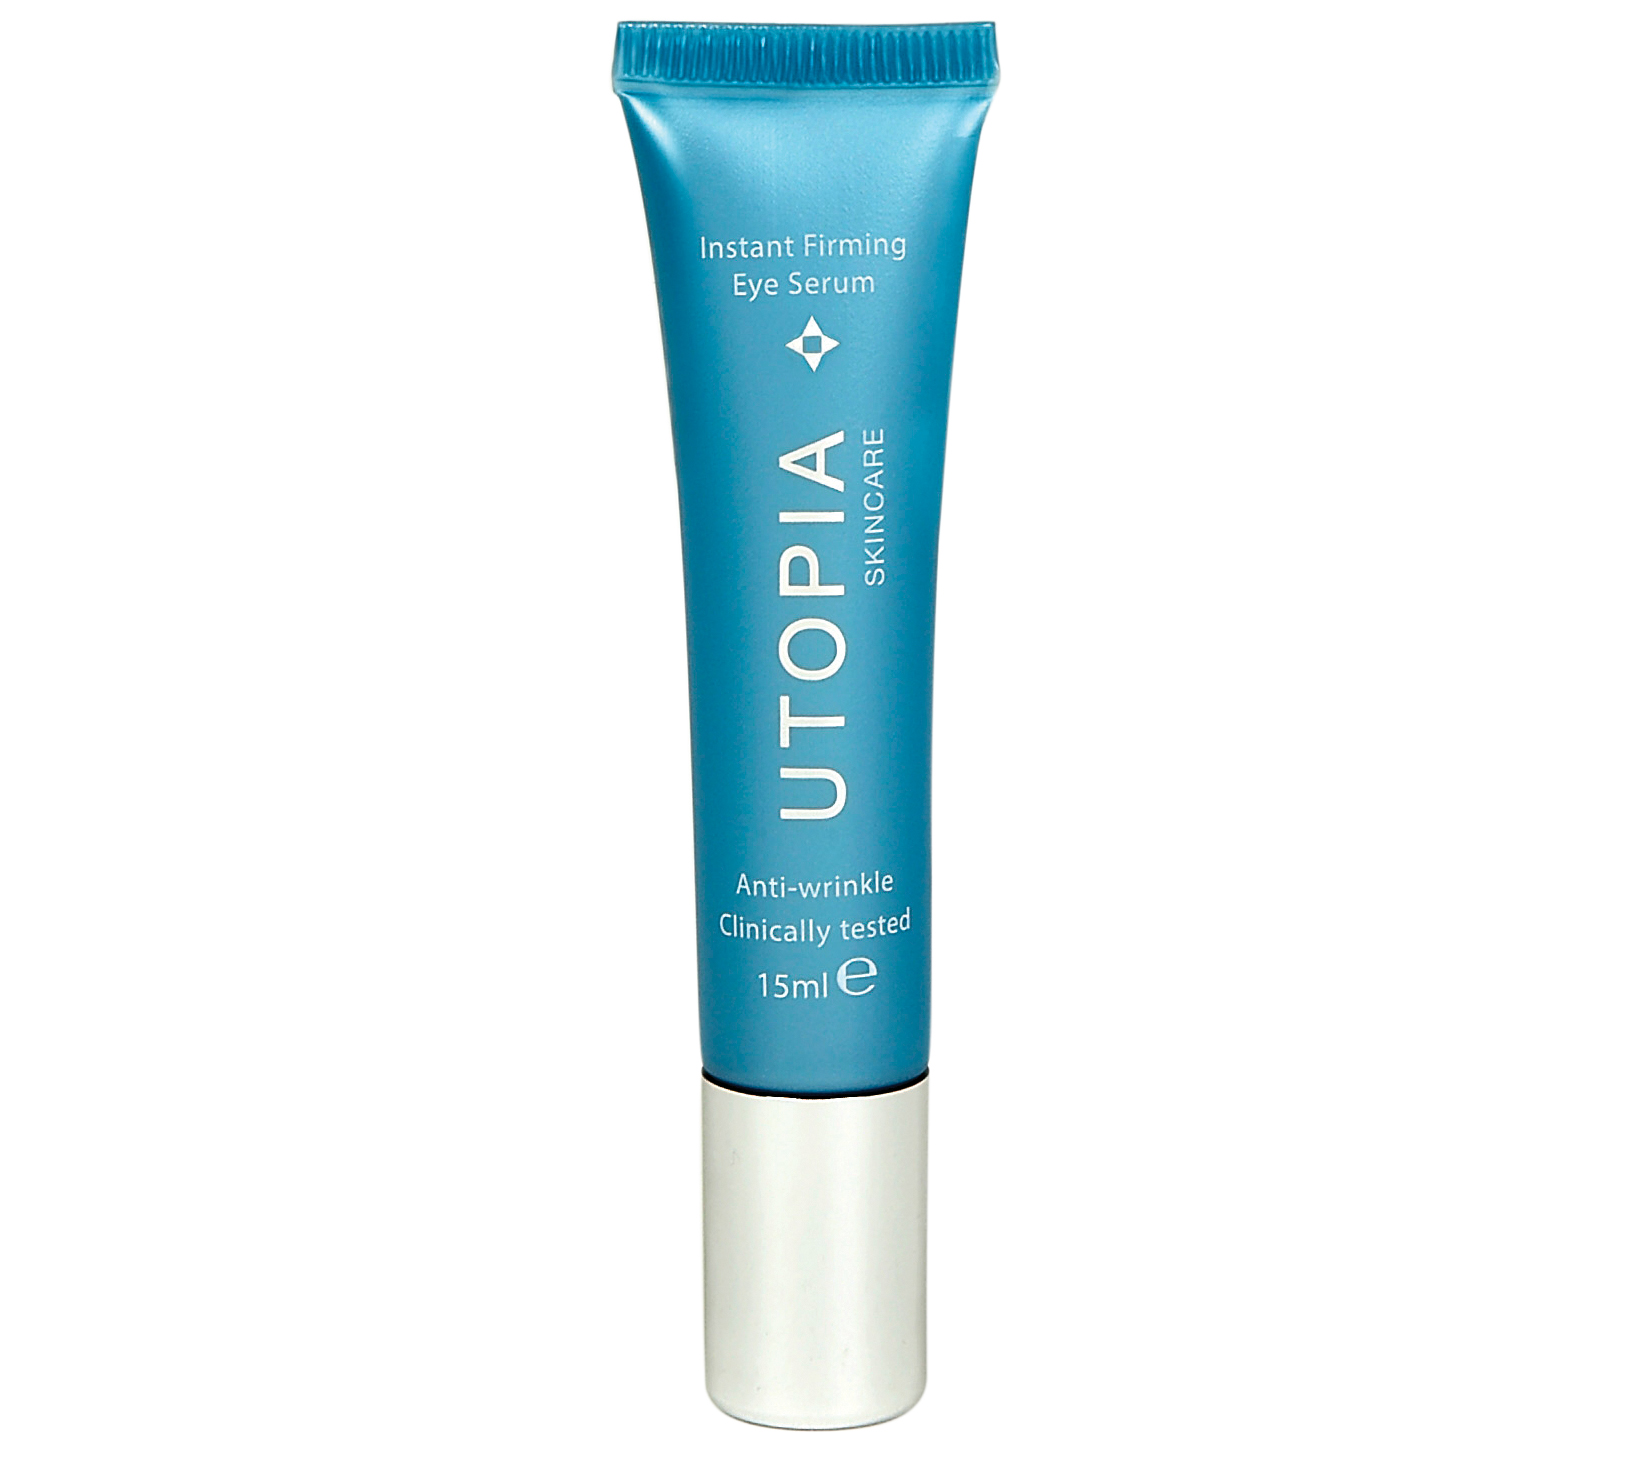 Utopia Instant Firming Eye Serum (Utopia/PA)